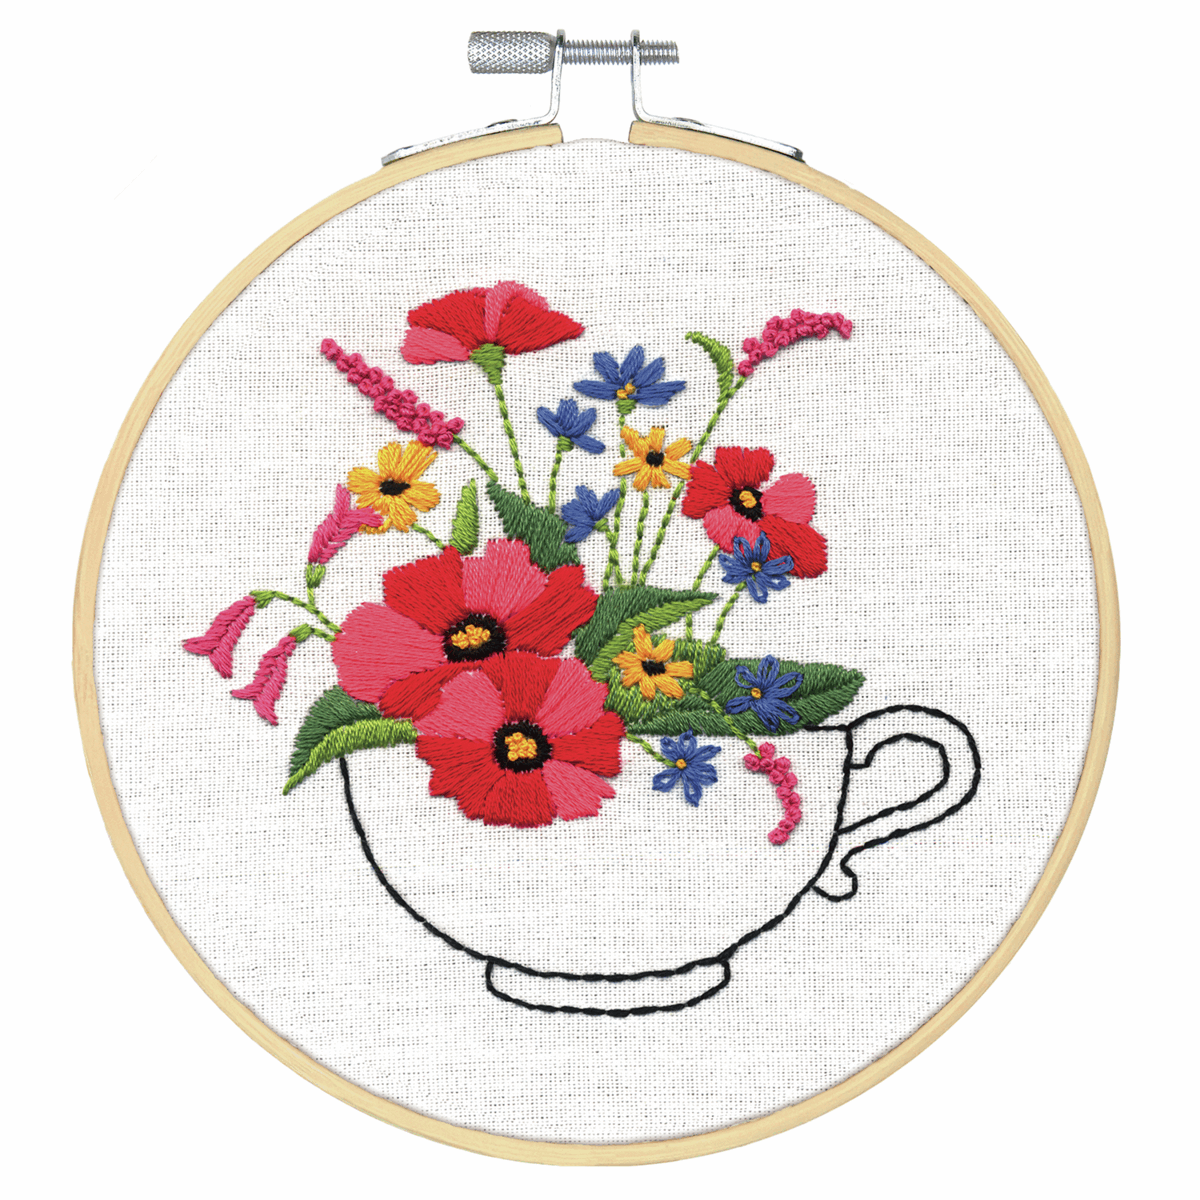 Picture of Crewel Embroidery Kit: with Hoop: Cup of Flowers